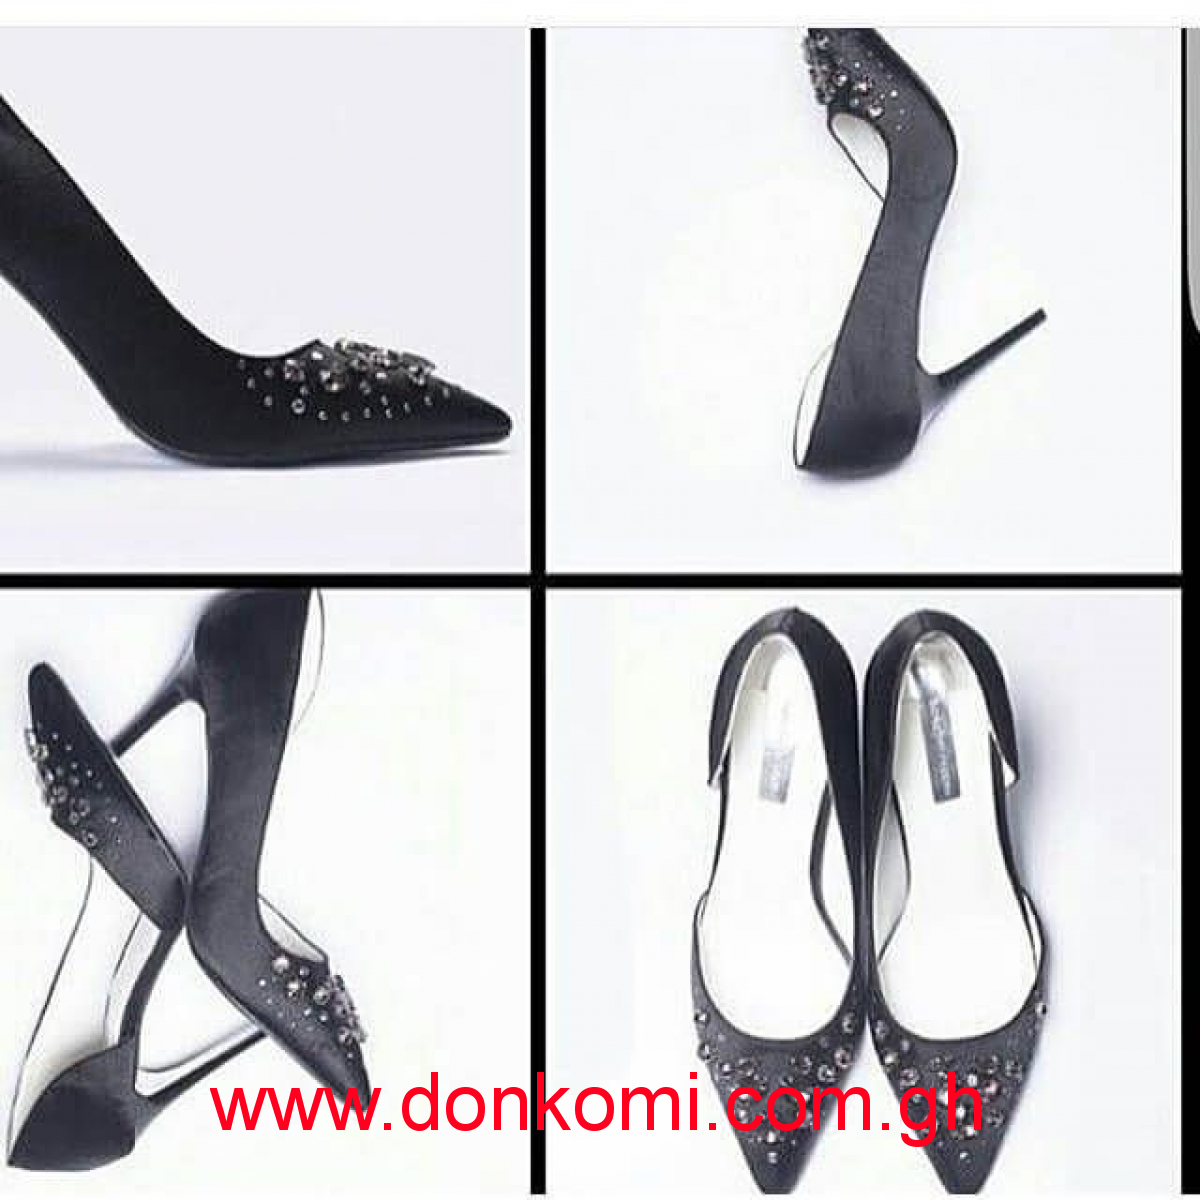 DOROTHY PERKINS HEELS WITH DIAMANTE STONES